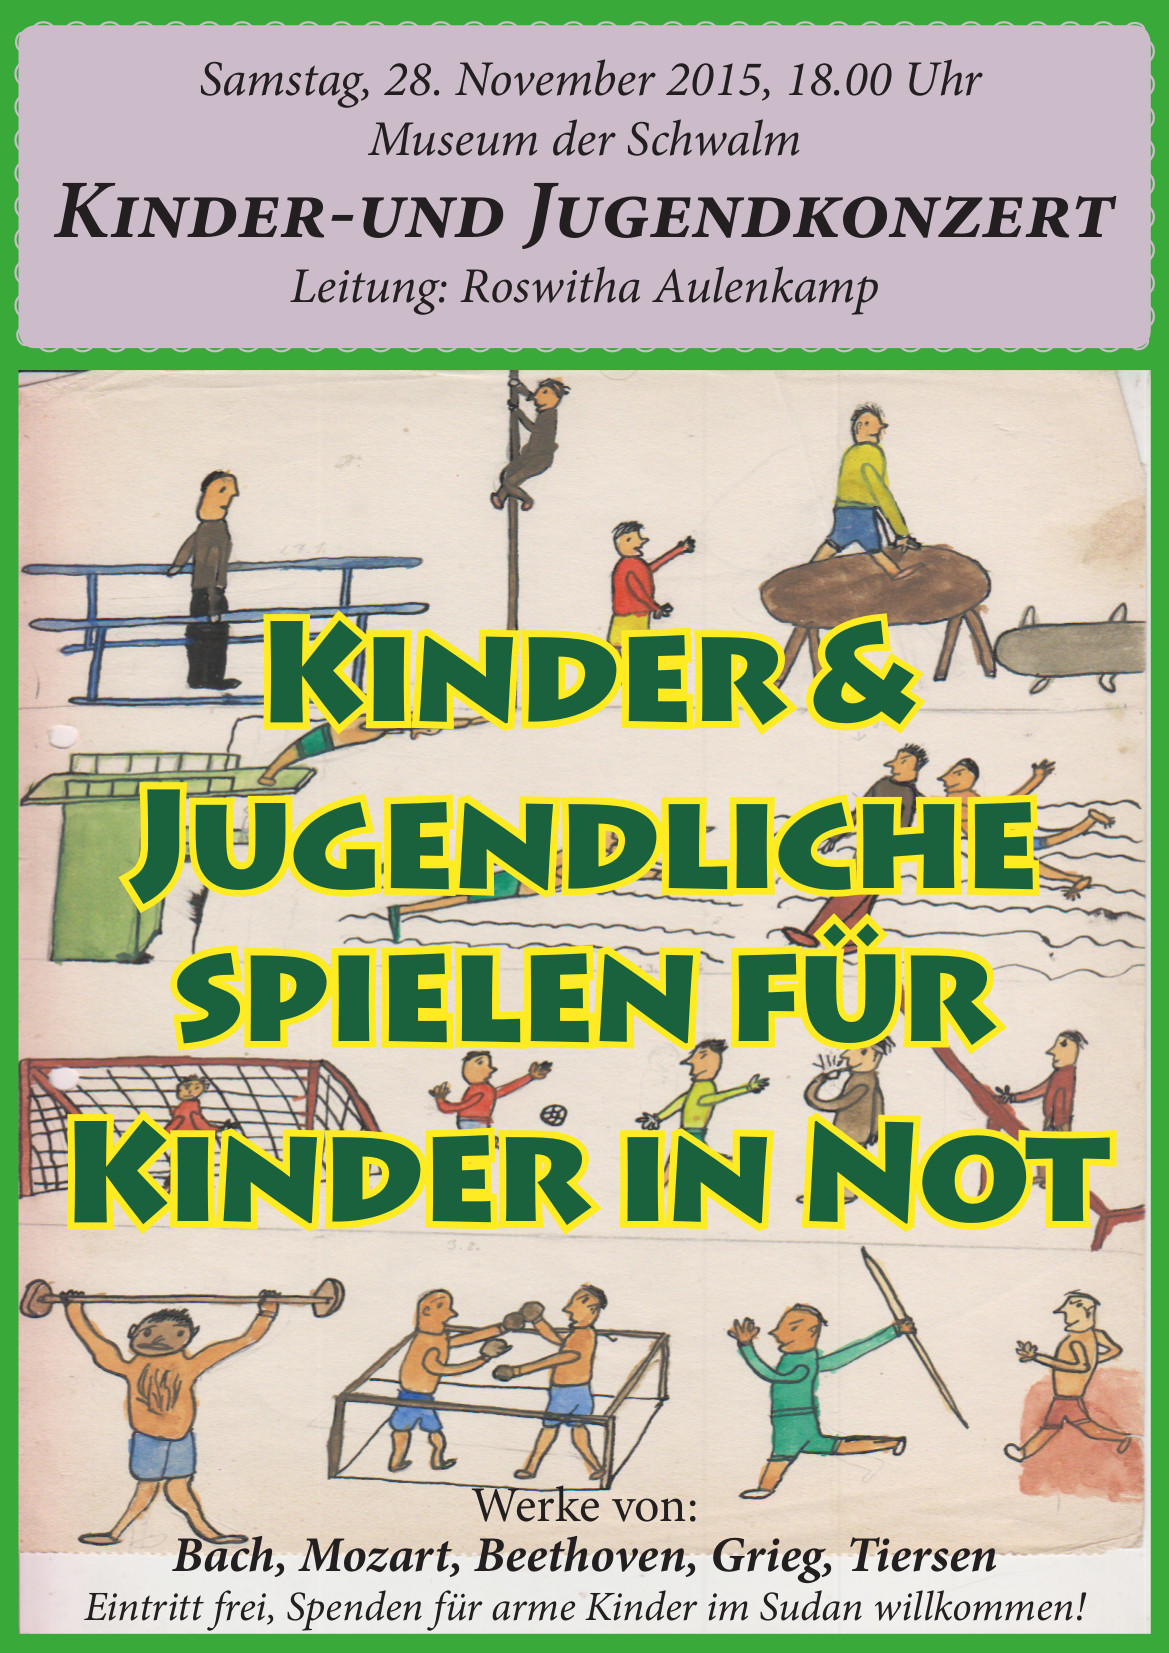 2015-11-29 PlakatA3 Aulenkamp Kinder spielen für Kinder in Not